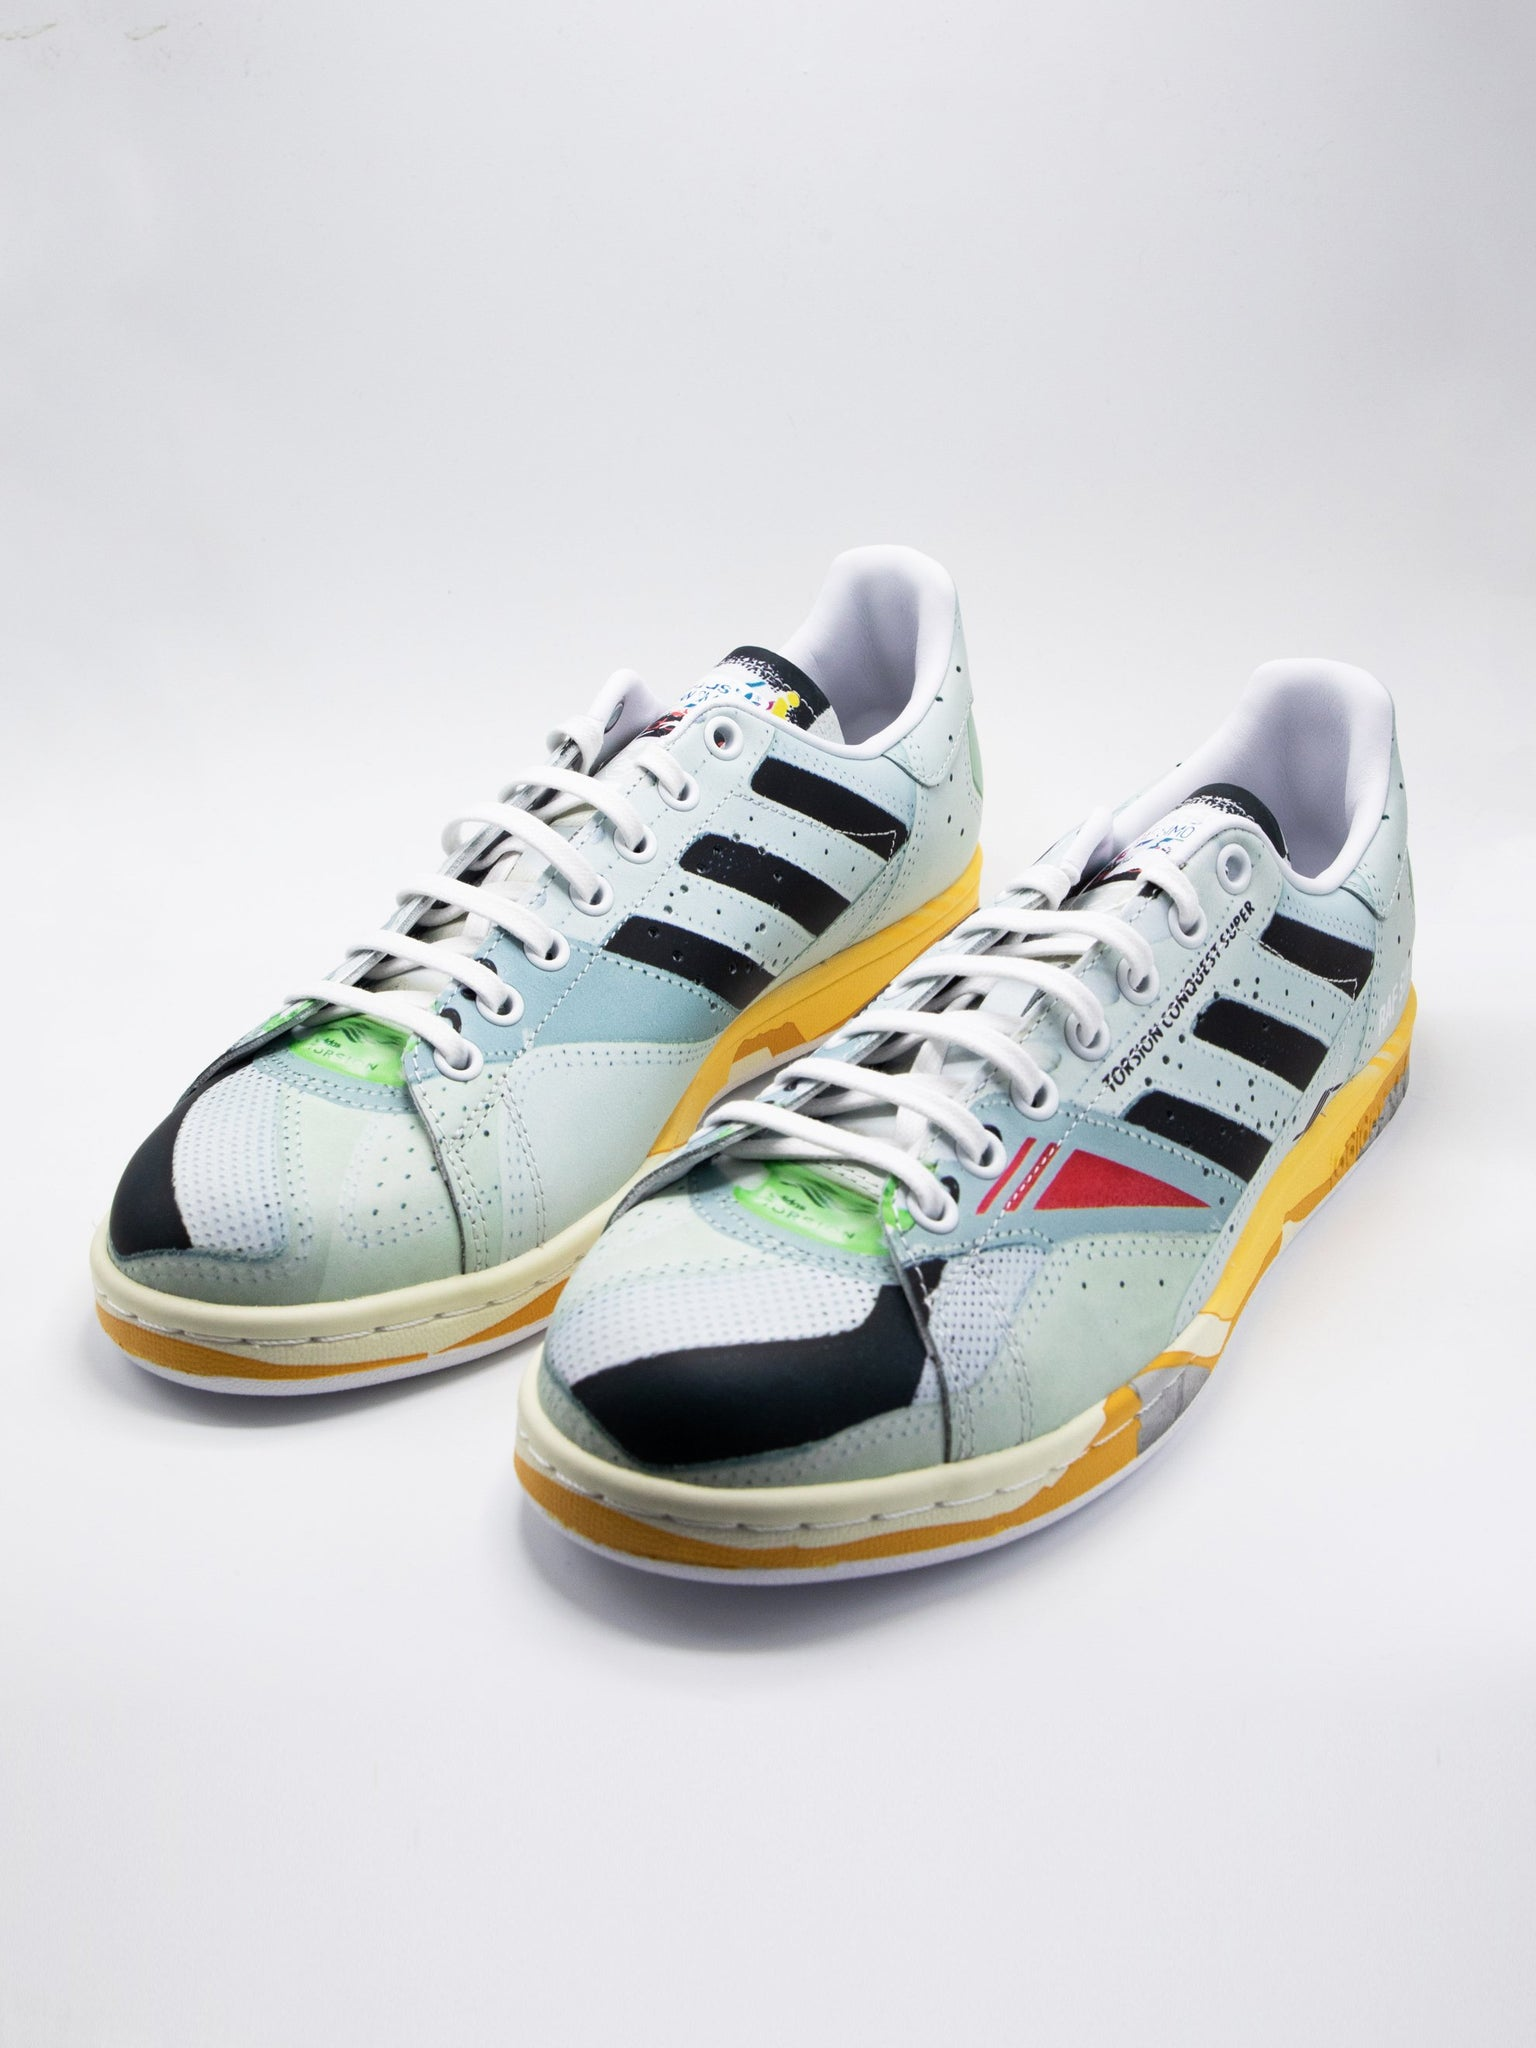 adidas-rs-torsion-stan